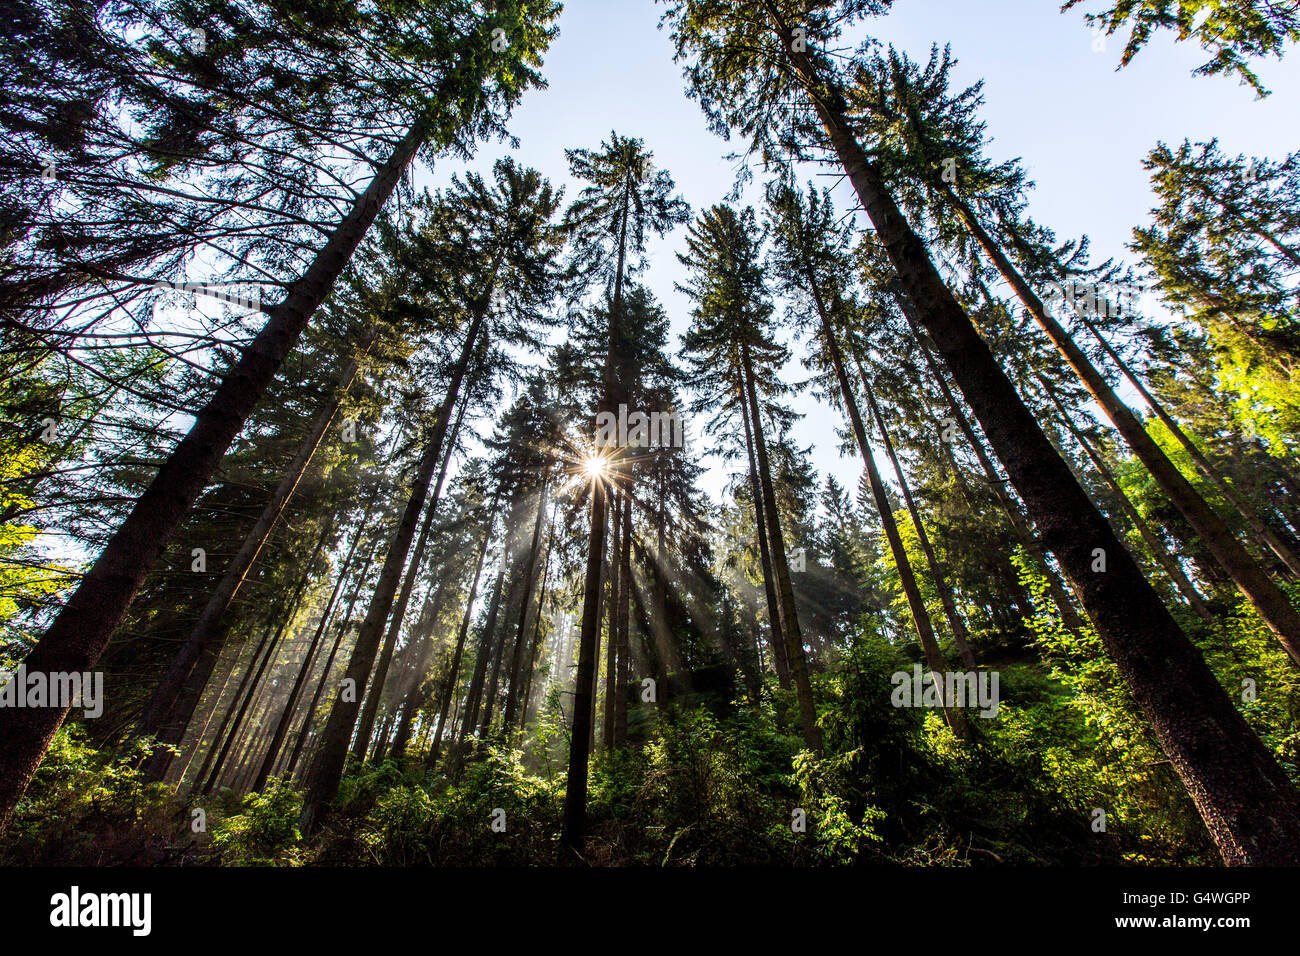 Forest, spruce, sun rays penetrate through the treetops, timberland, Sauerland area, Winterberg, Germany, Stock Photo